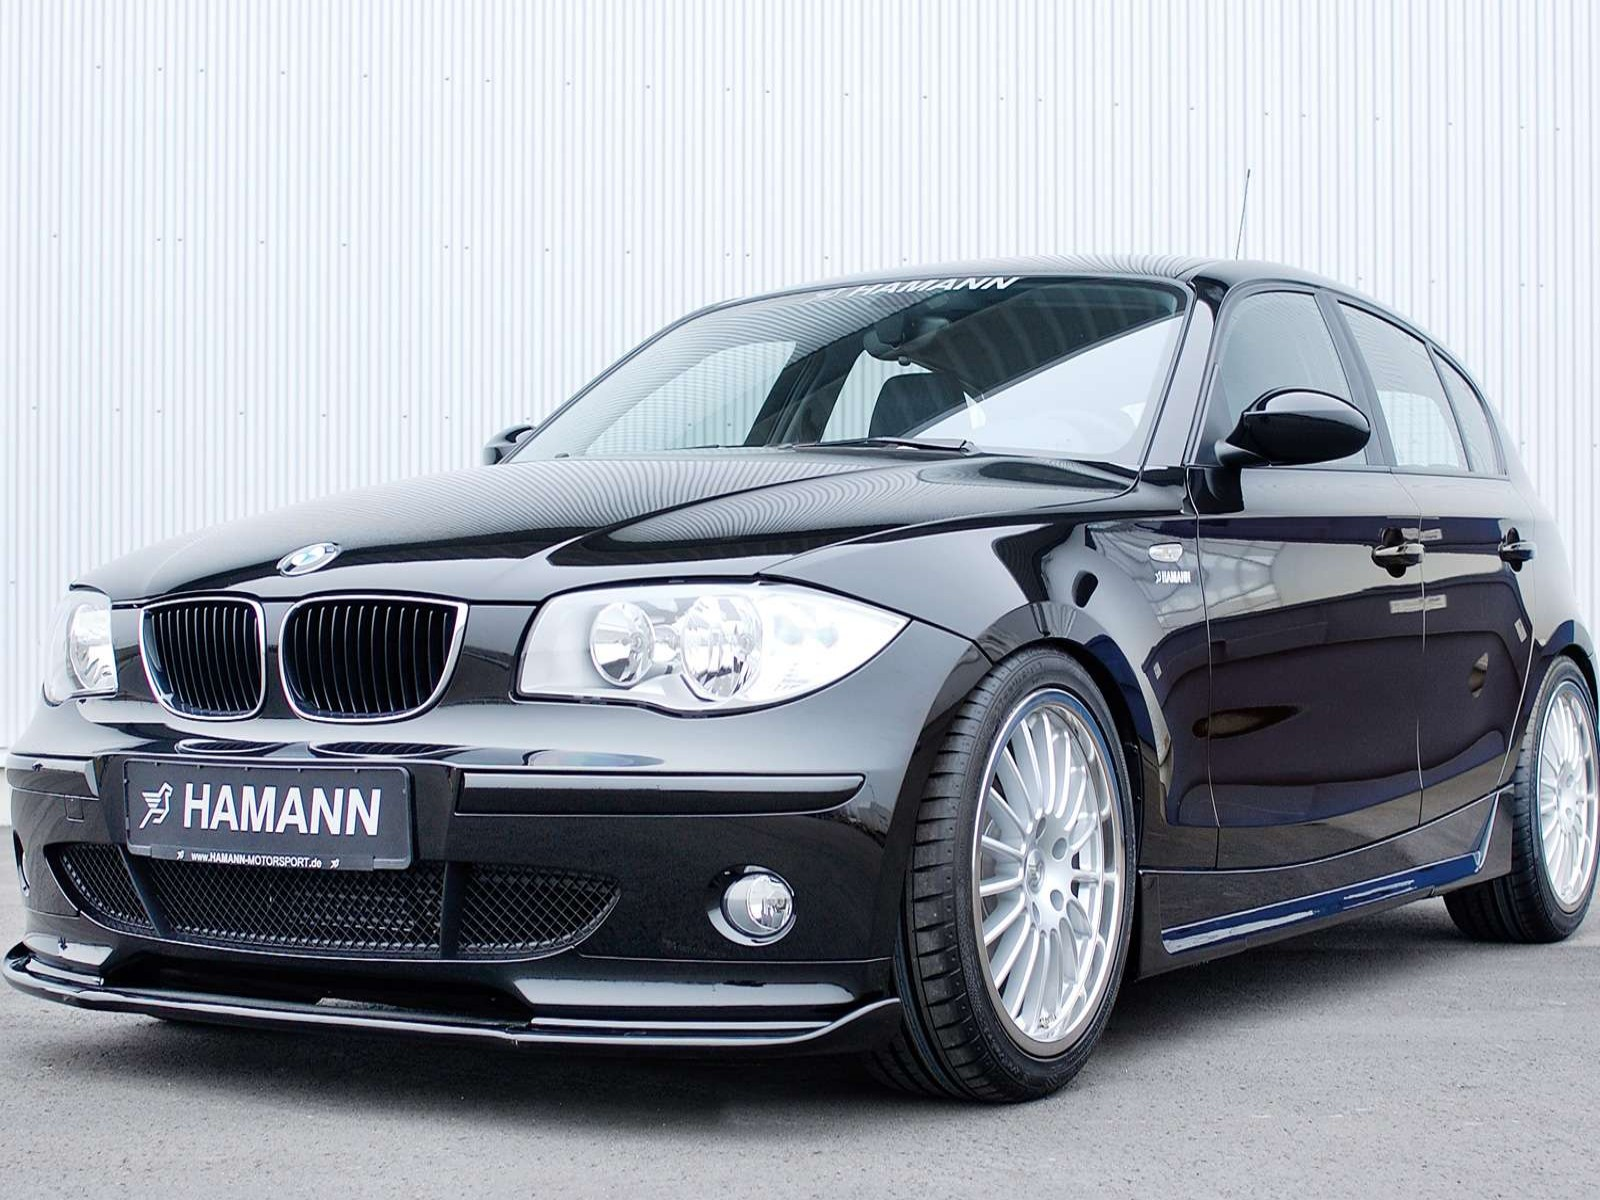 bmw 1er photos 9 on better parts ltd. Black Bedroom Furniture Sets. Home Design Ideas